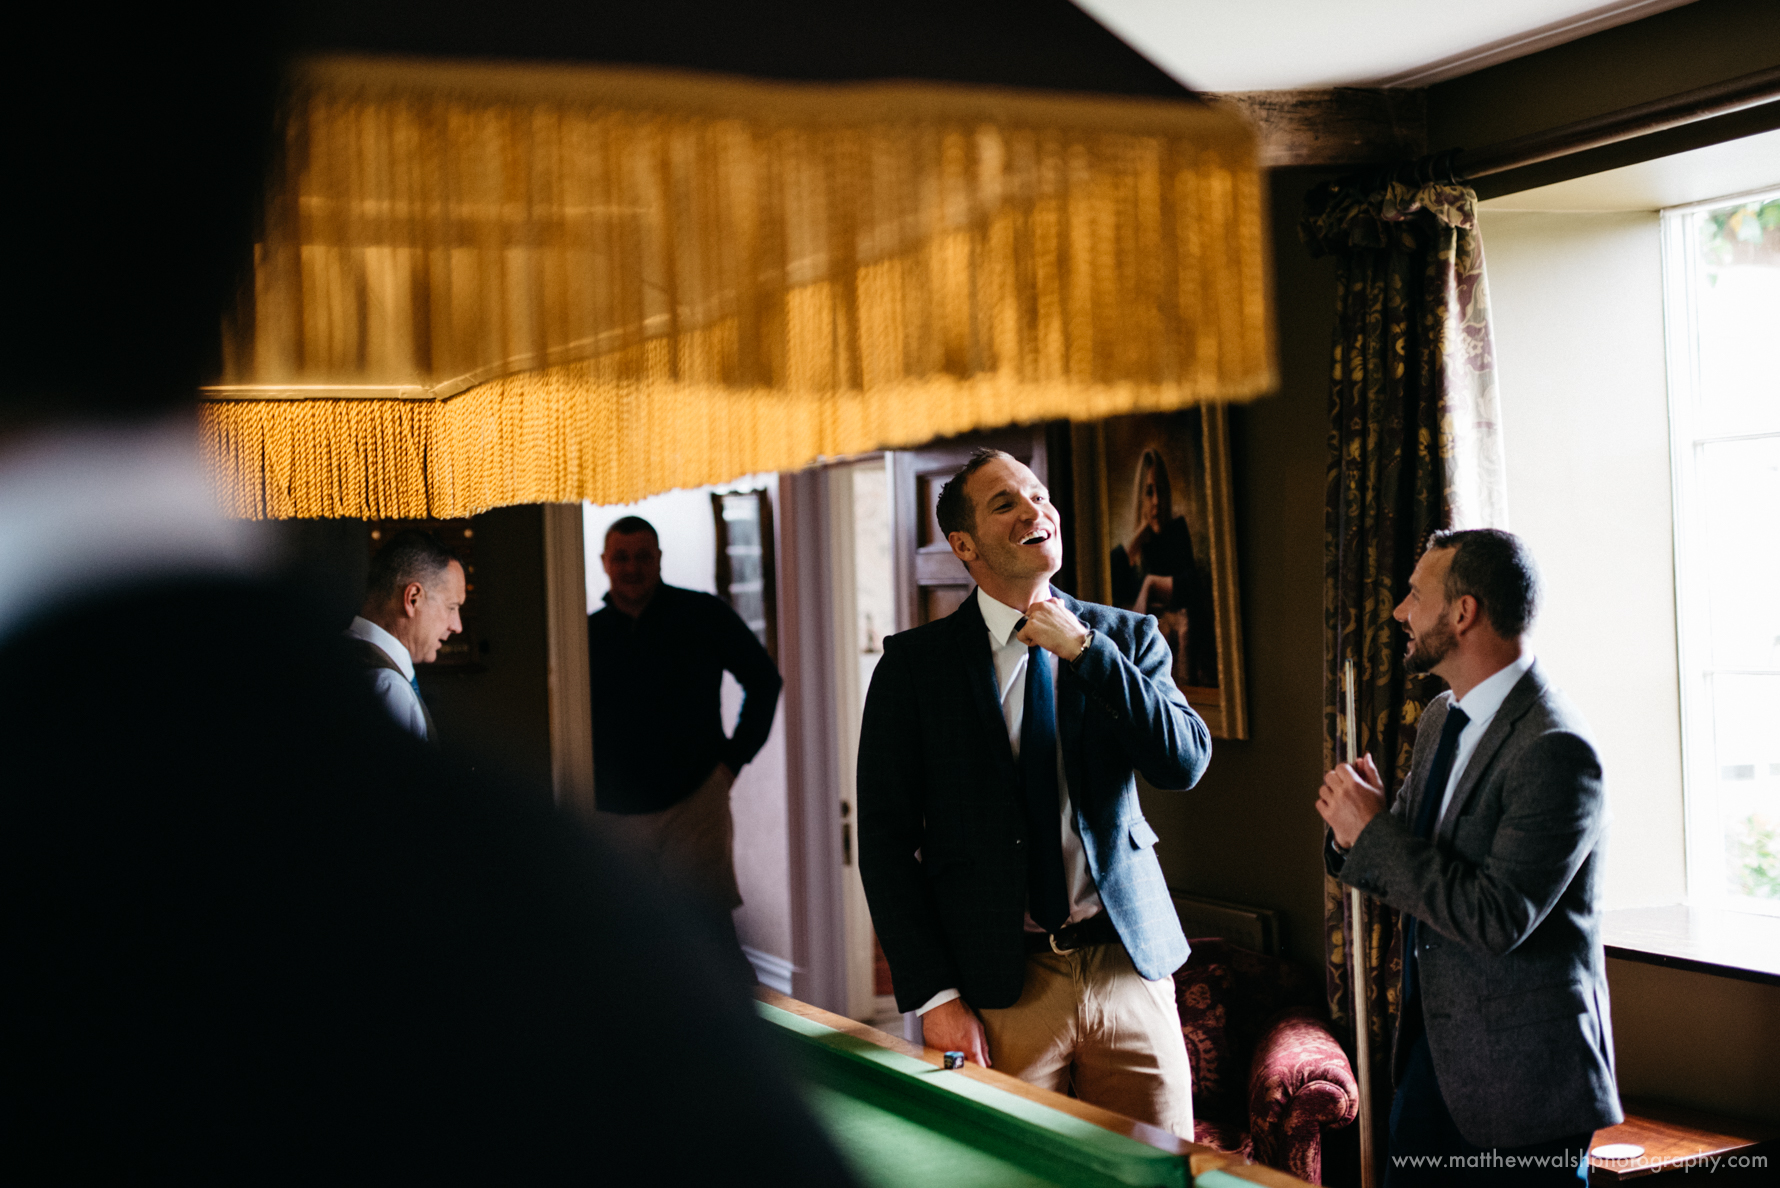 The groom and groomsmen calm the pre ceremony nerves in the billiards room